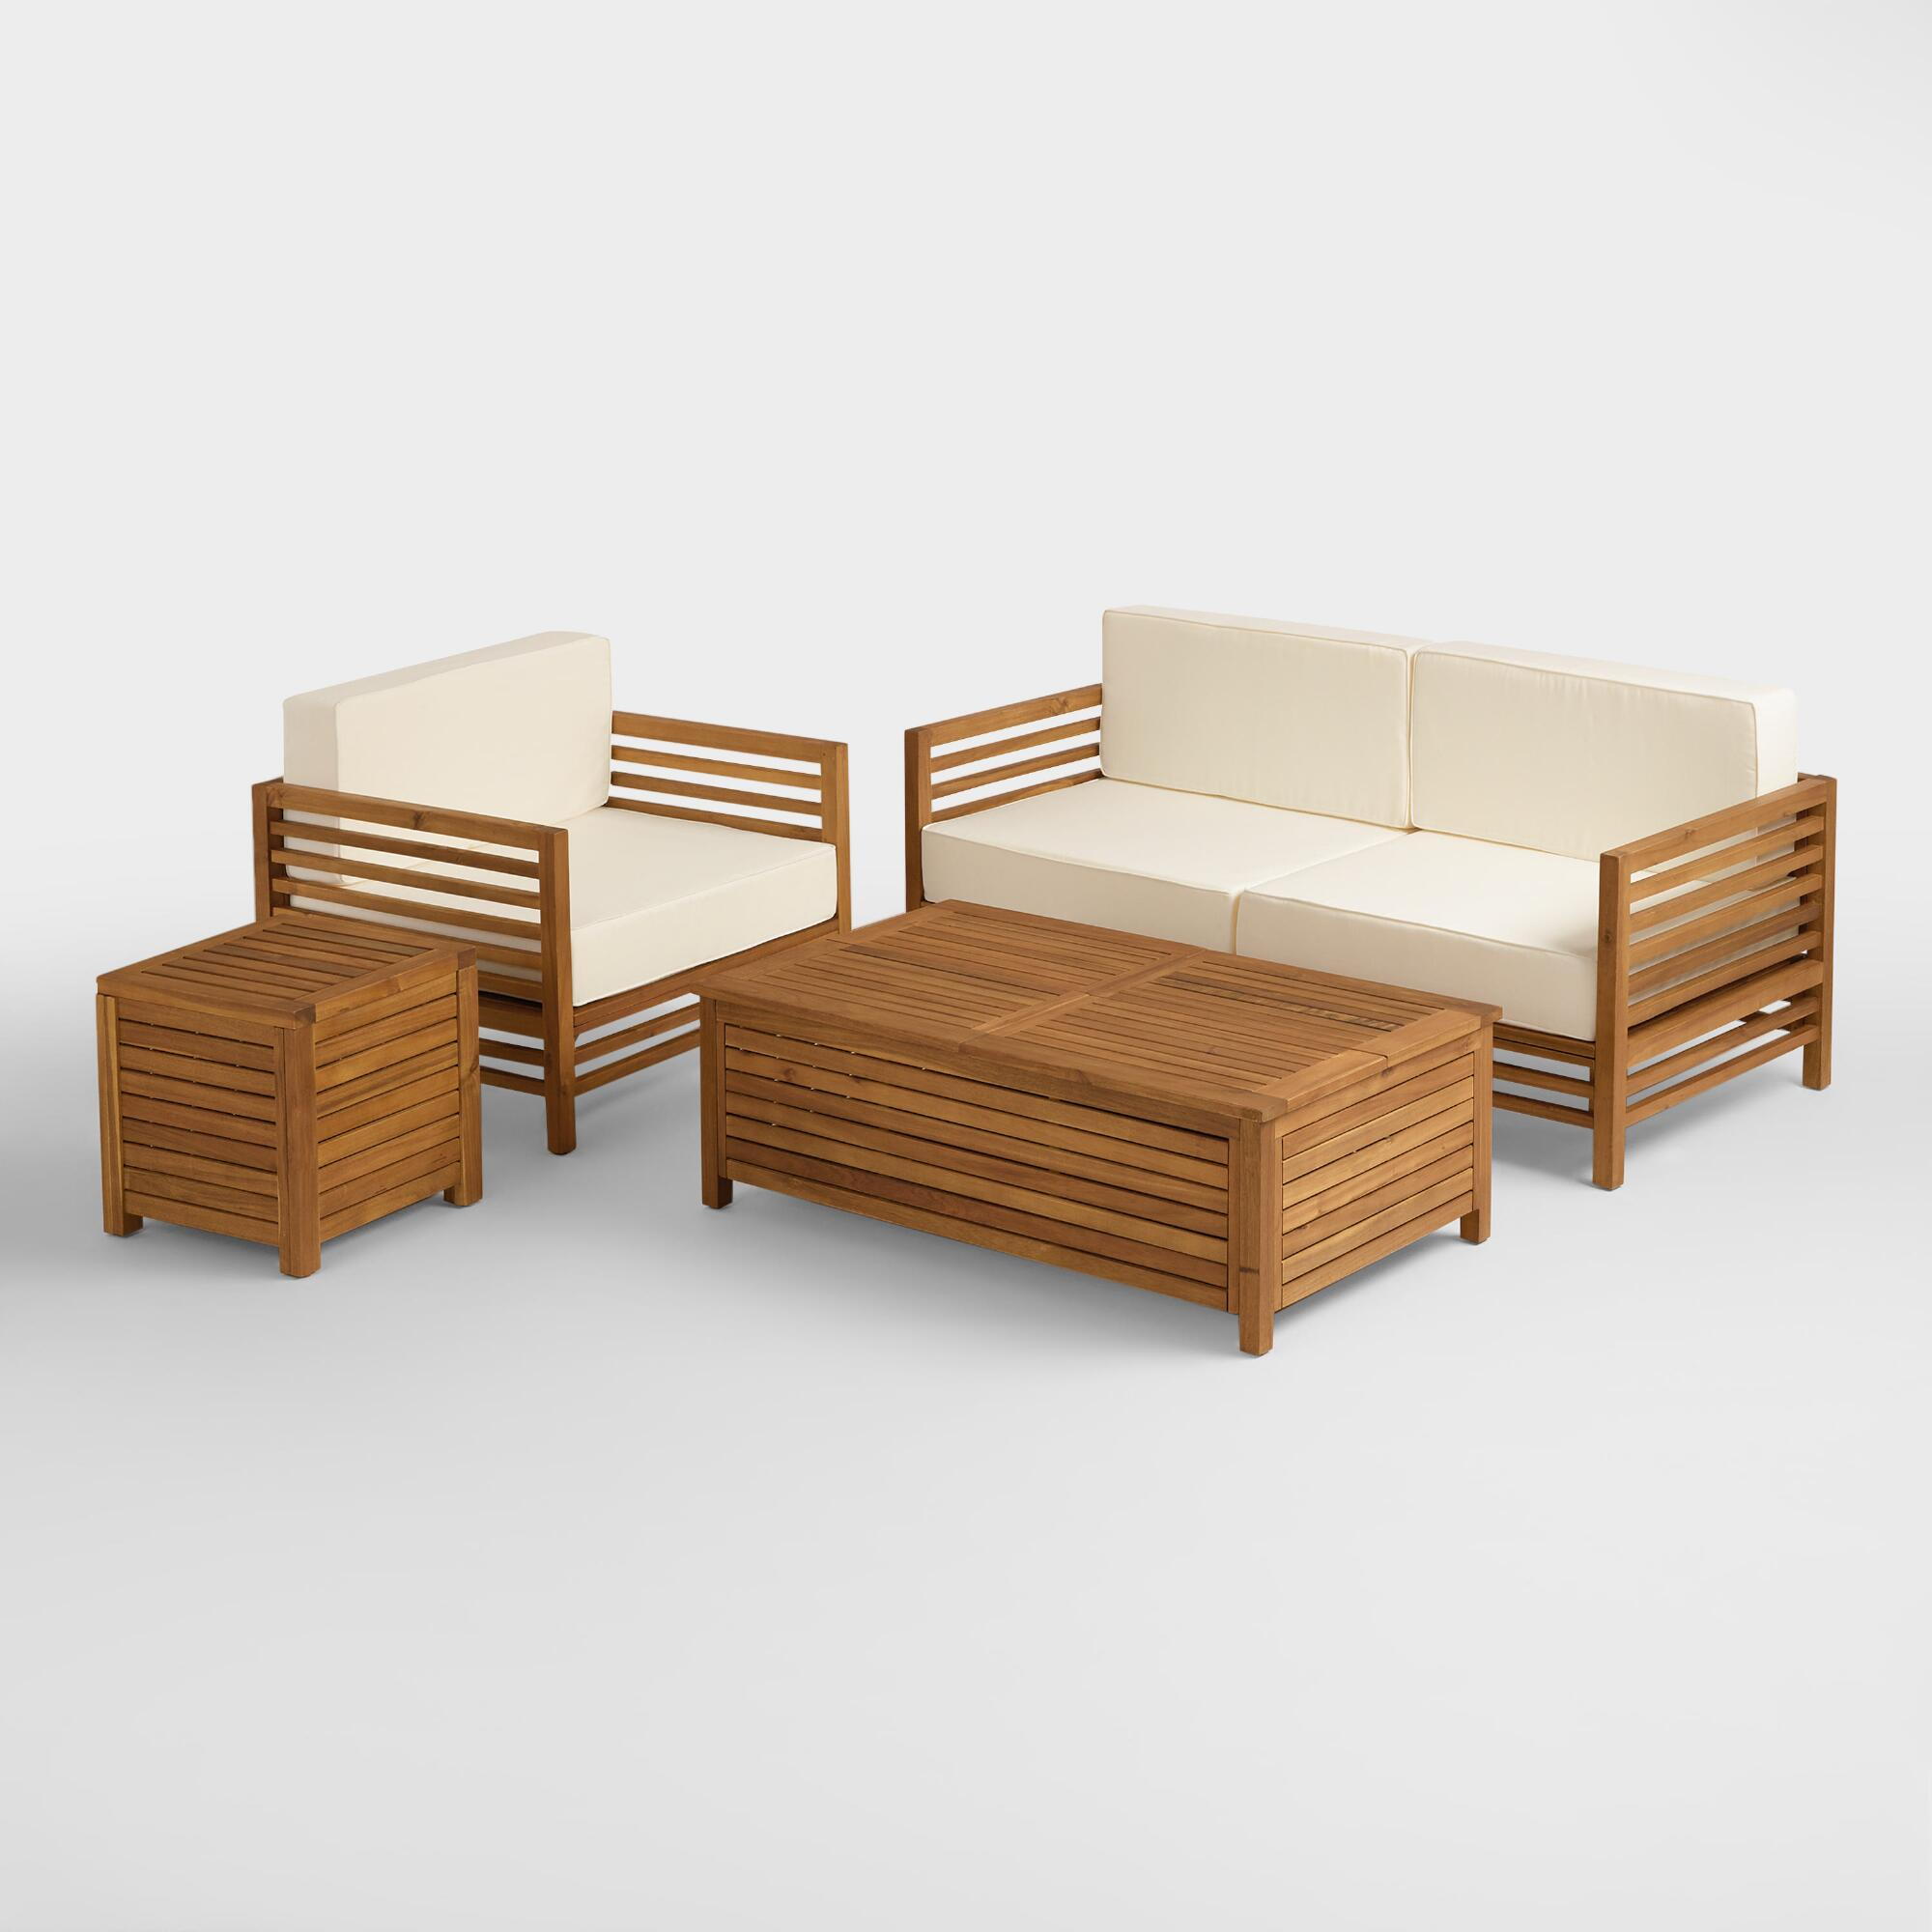 Affordable Outdoor & Patio Furniture | World Market